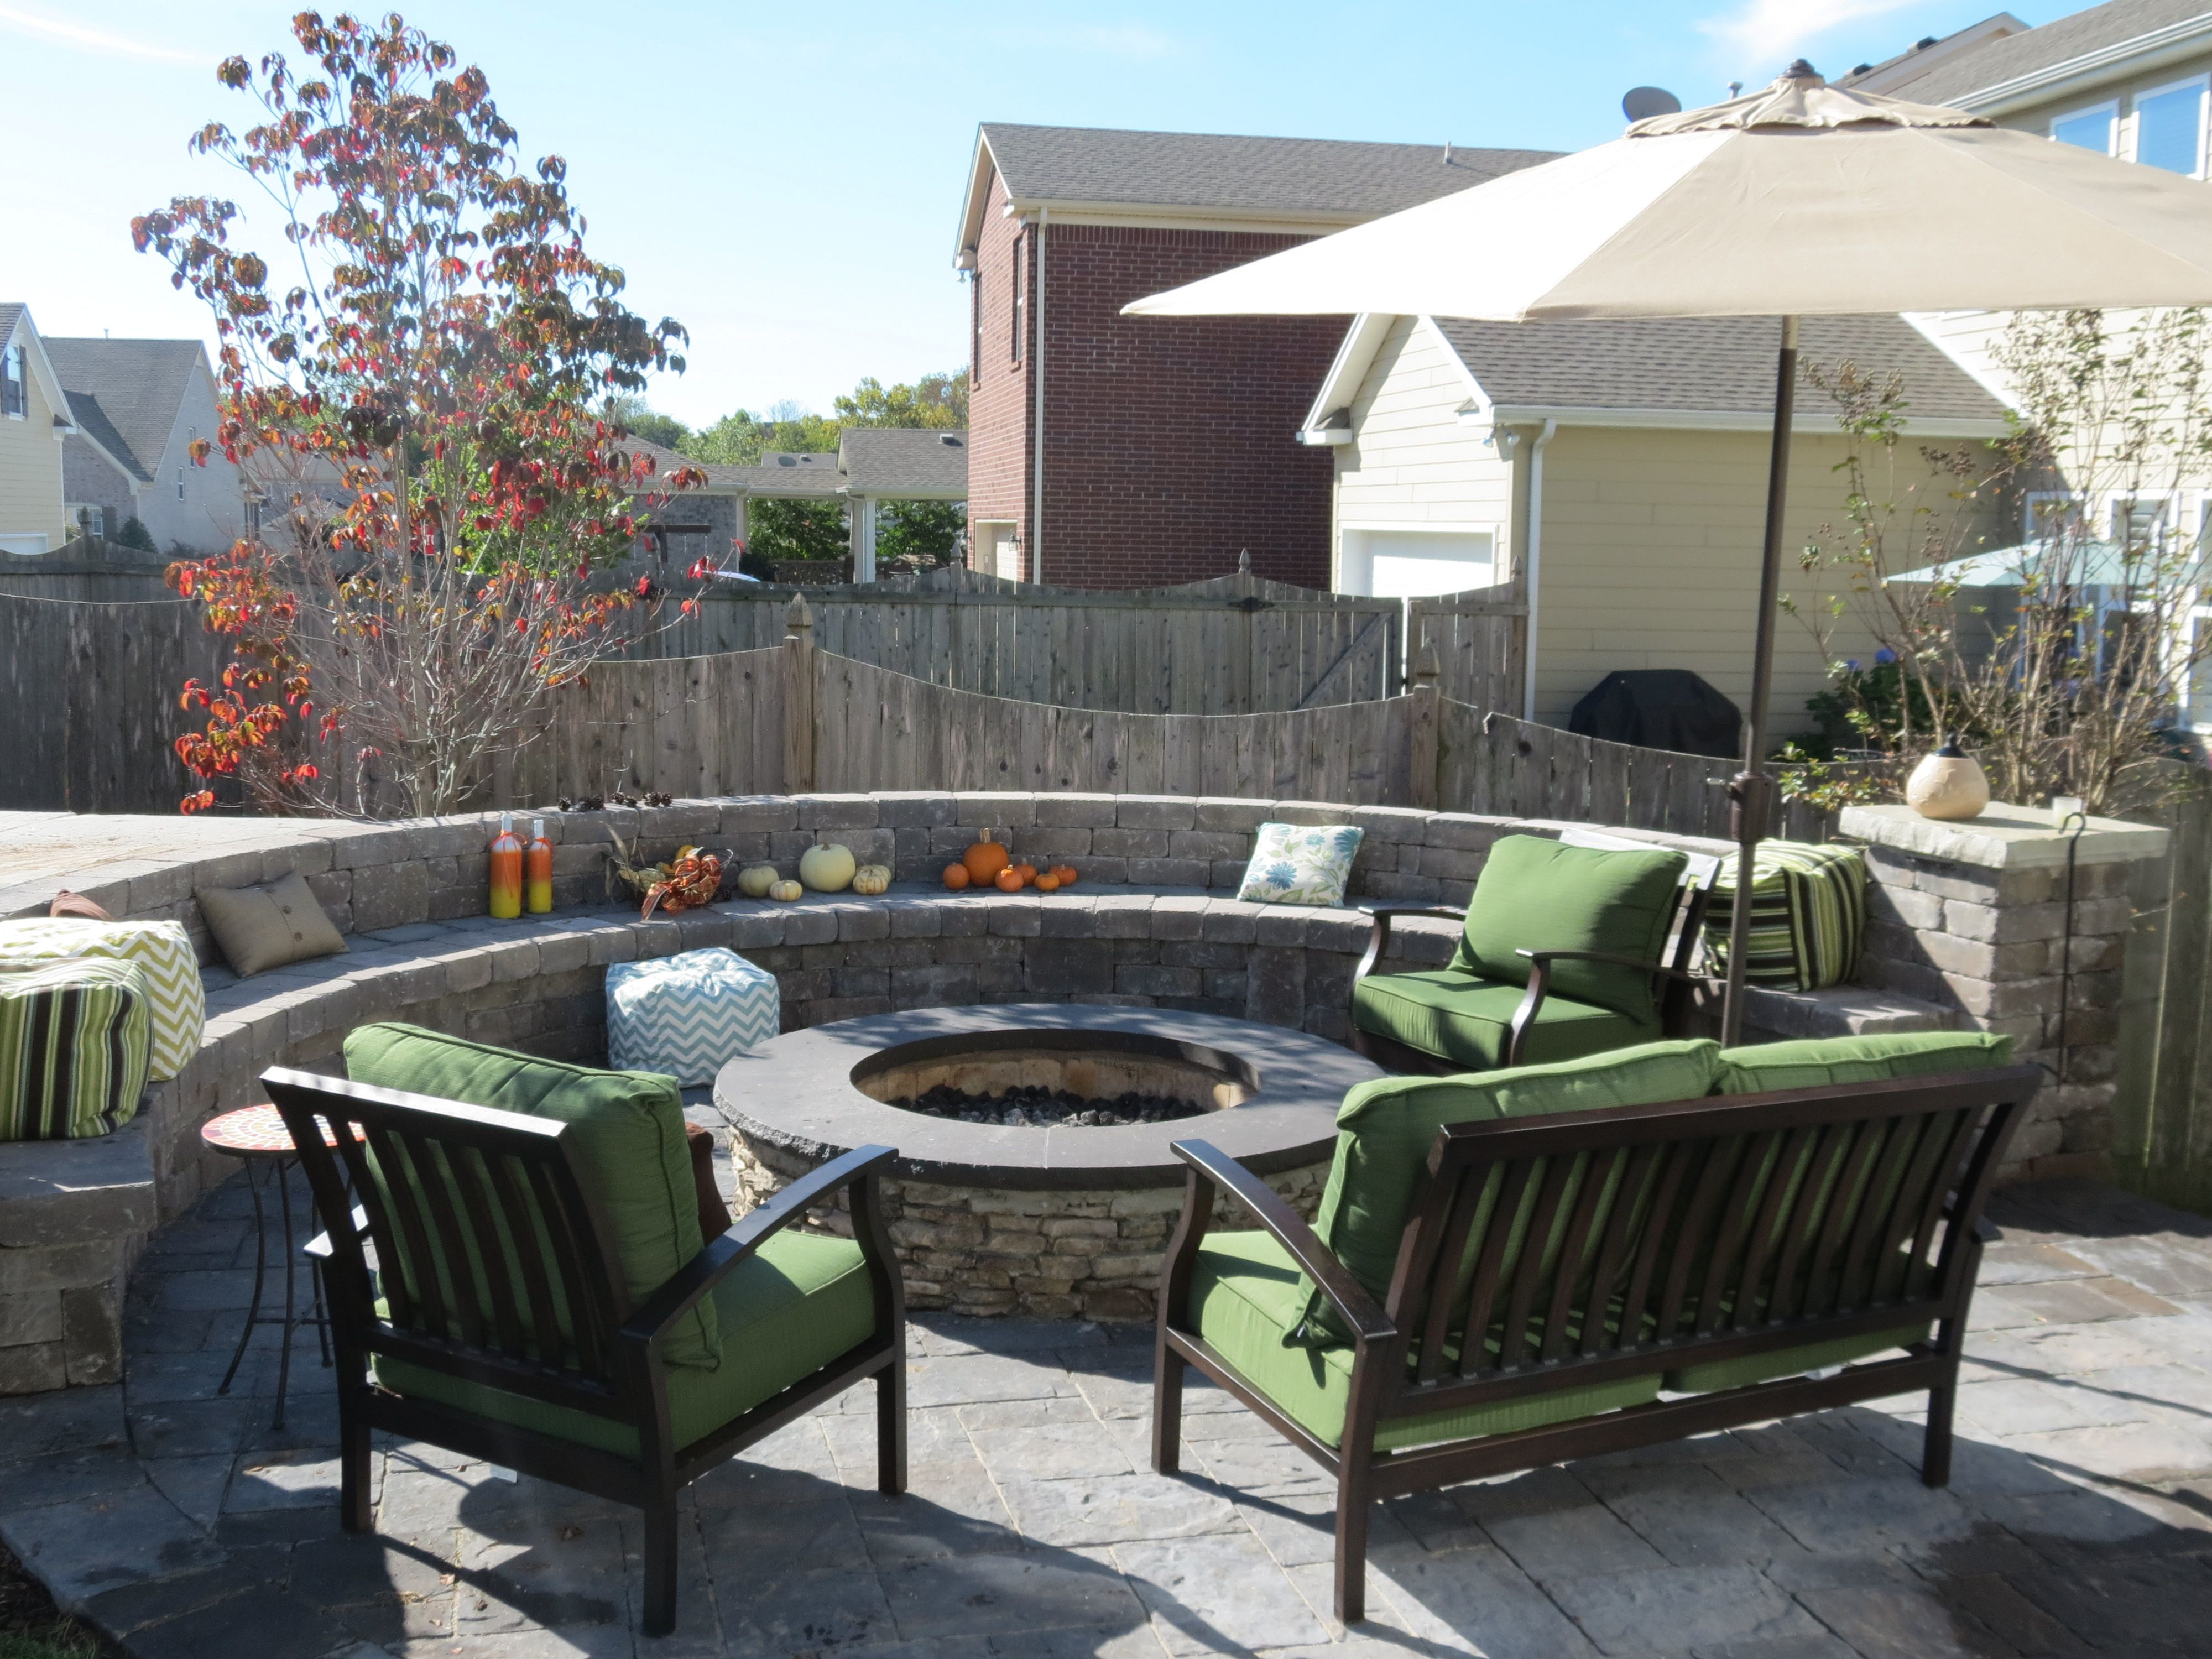 Backyard Brick Paver Patio With Natural Stone Fire Pit And